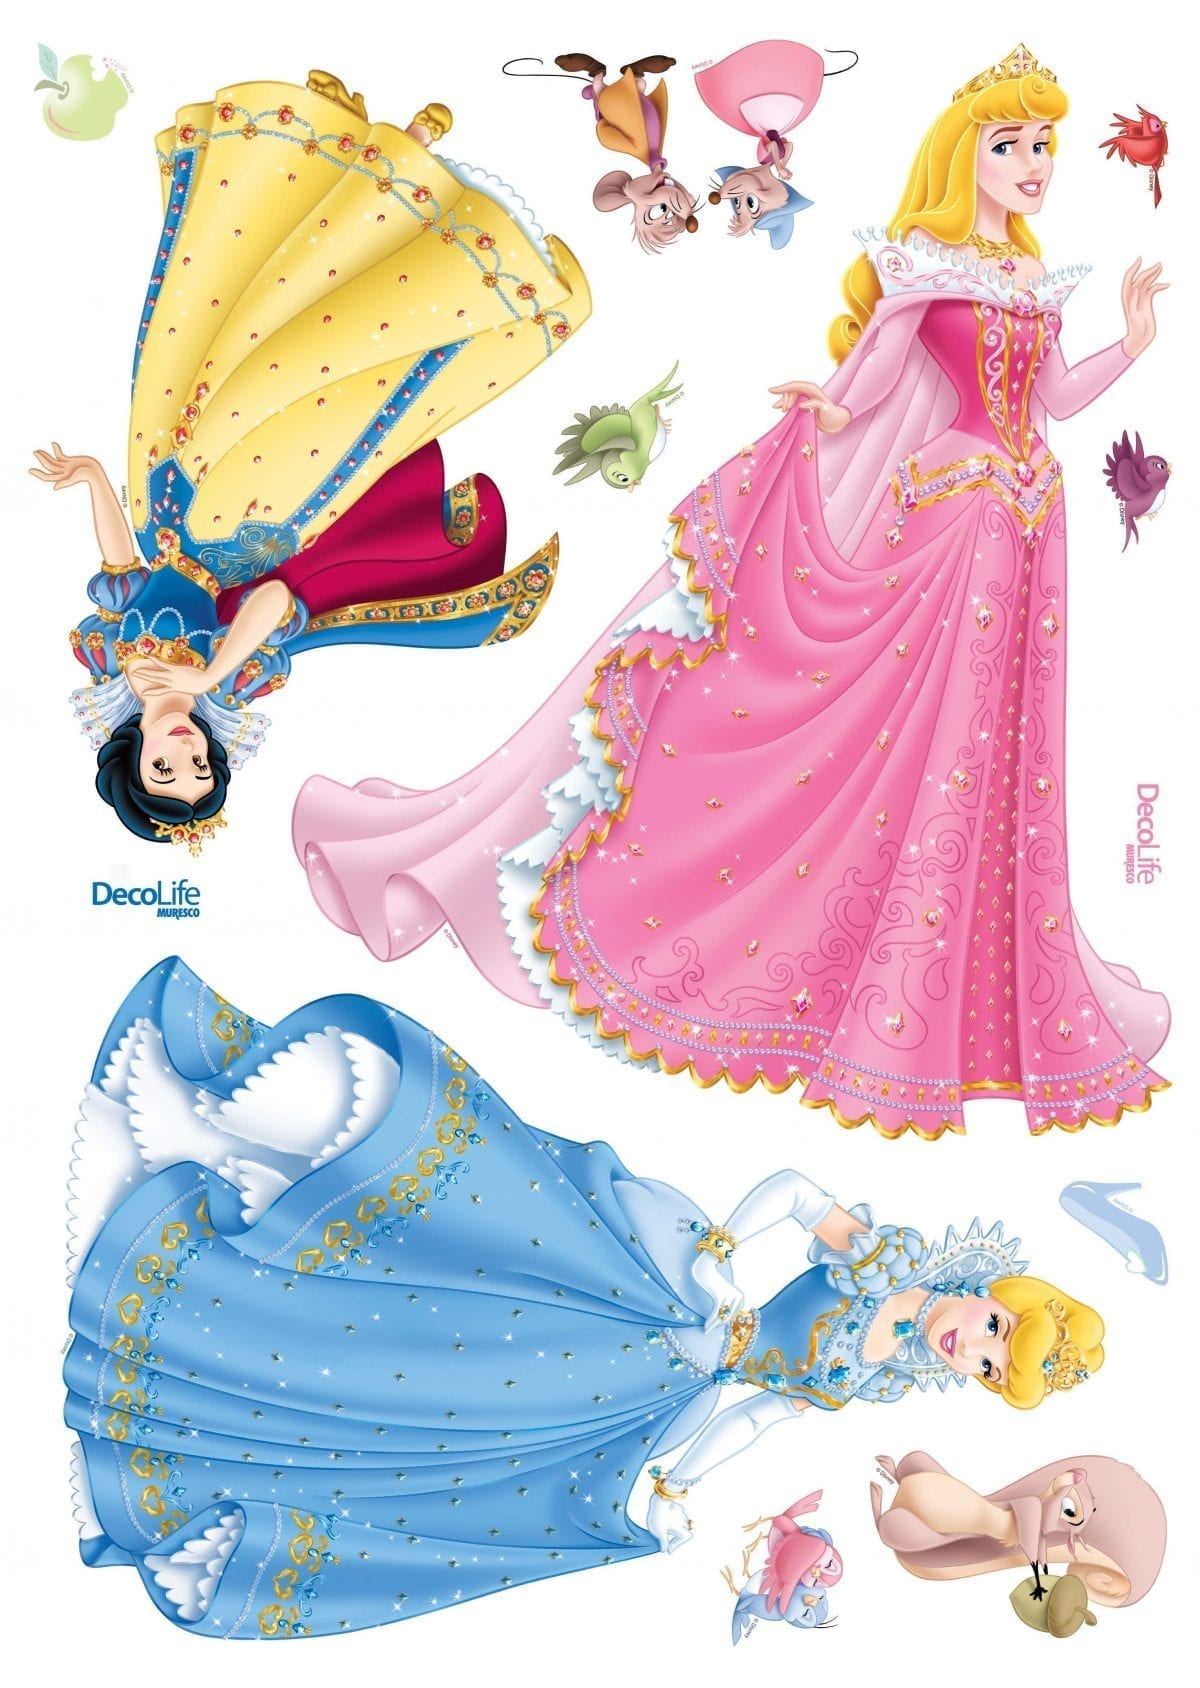 Wallsticker Princesas DISNEY 1522-1 Decolife Muresco